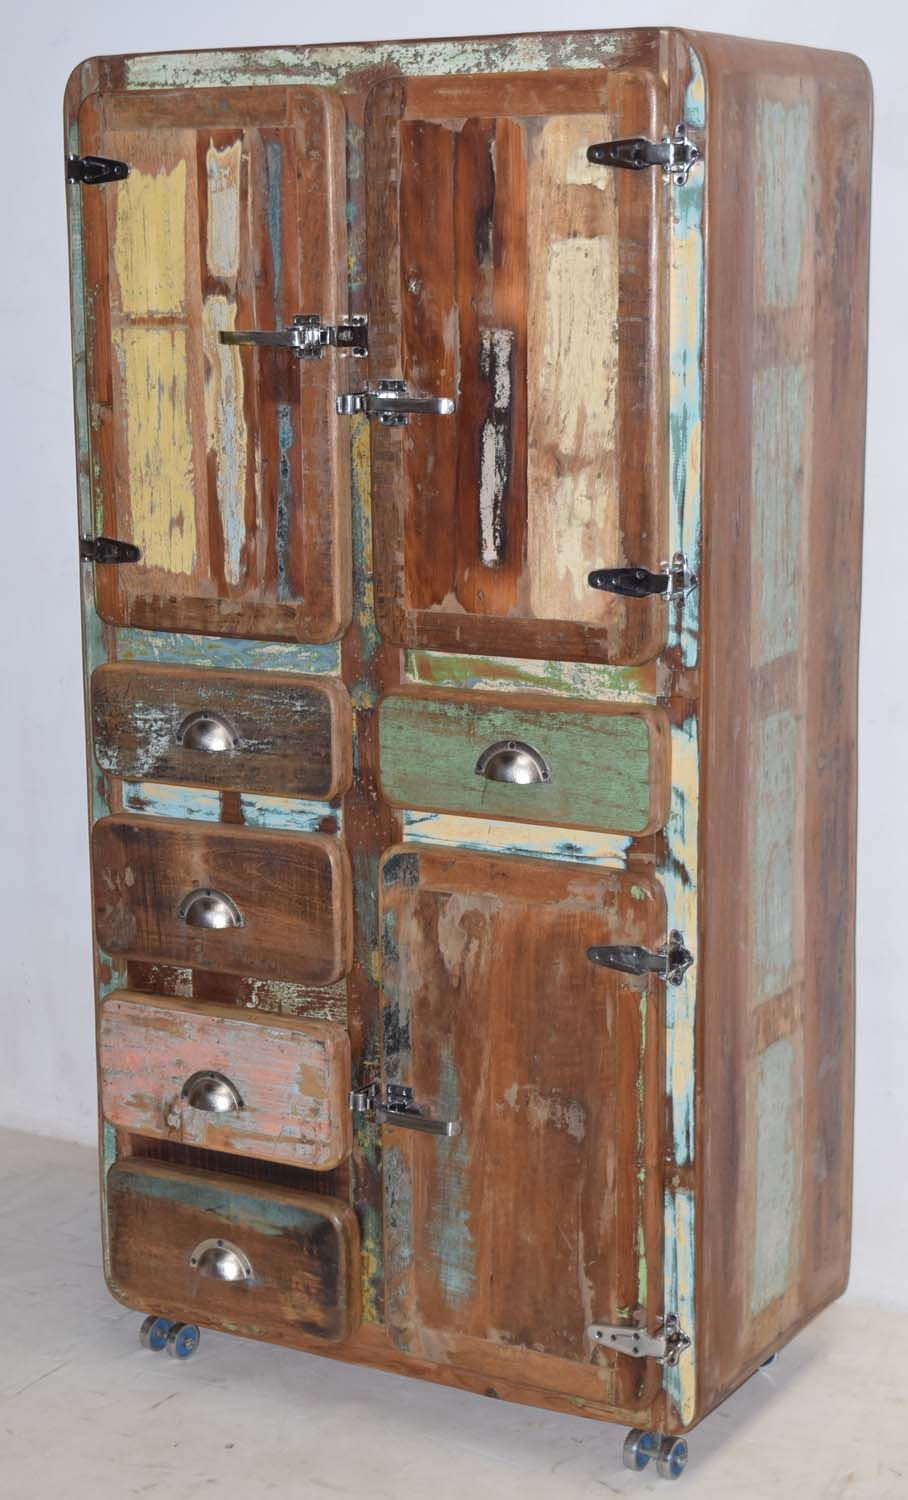 Reclaimed Recycled Wooden Cabinet. Jodhpur Furniture Factory